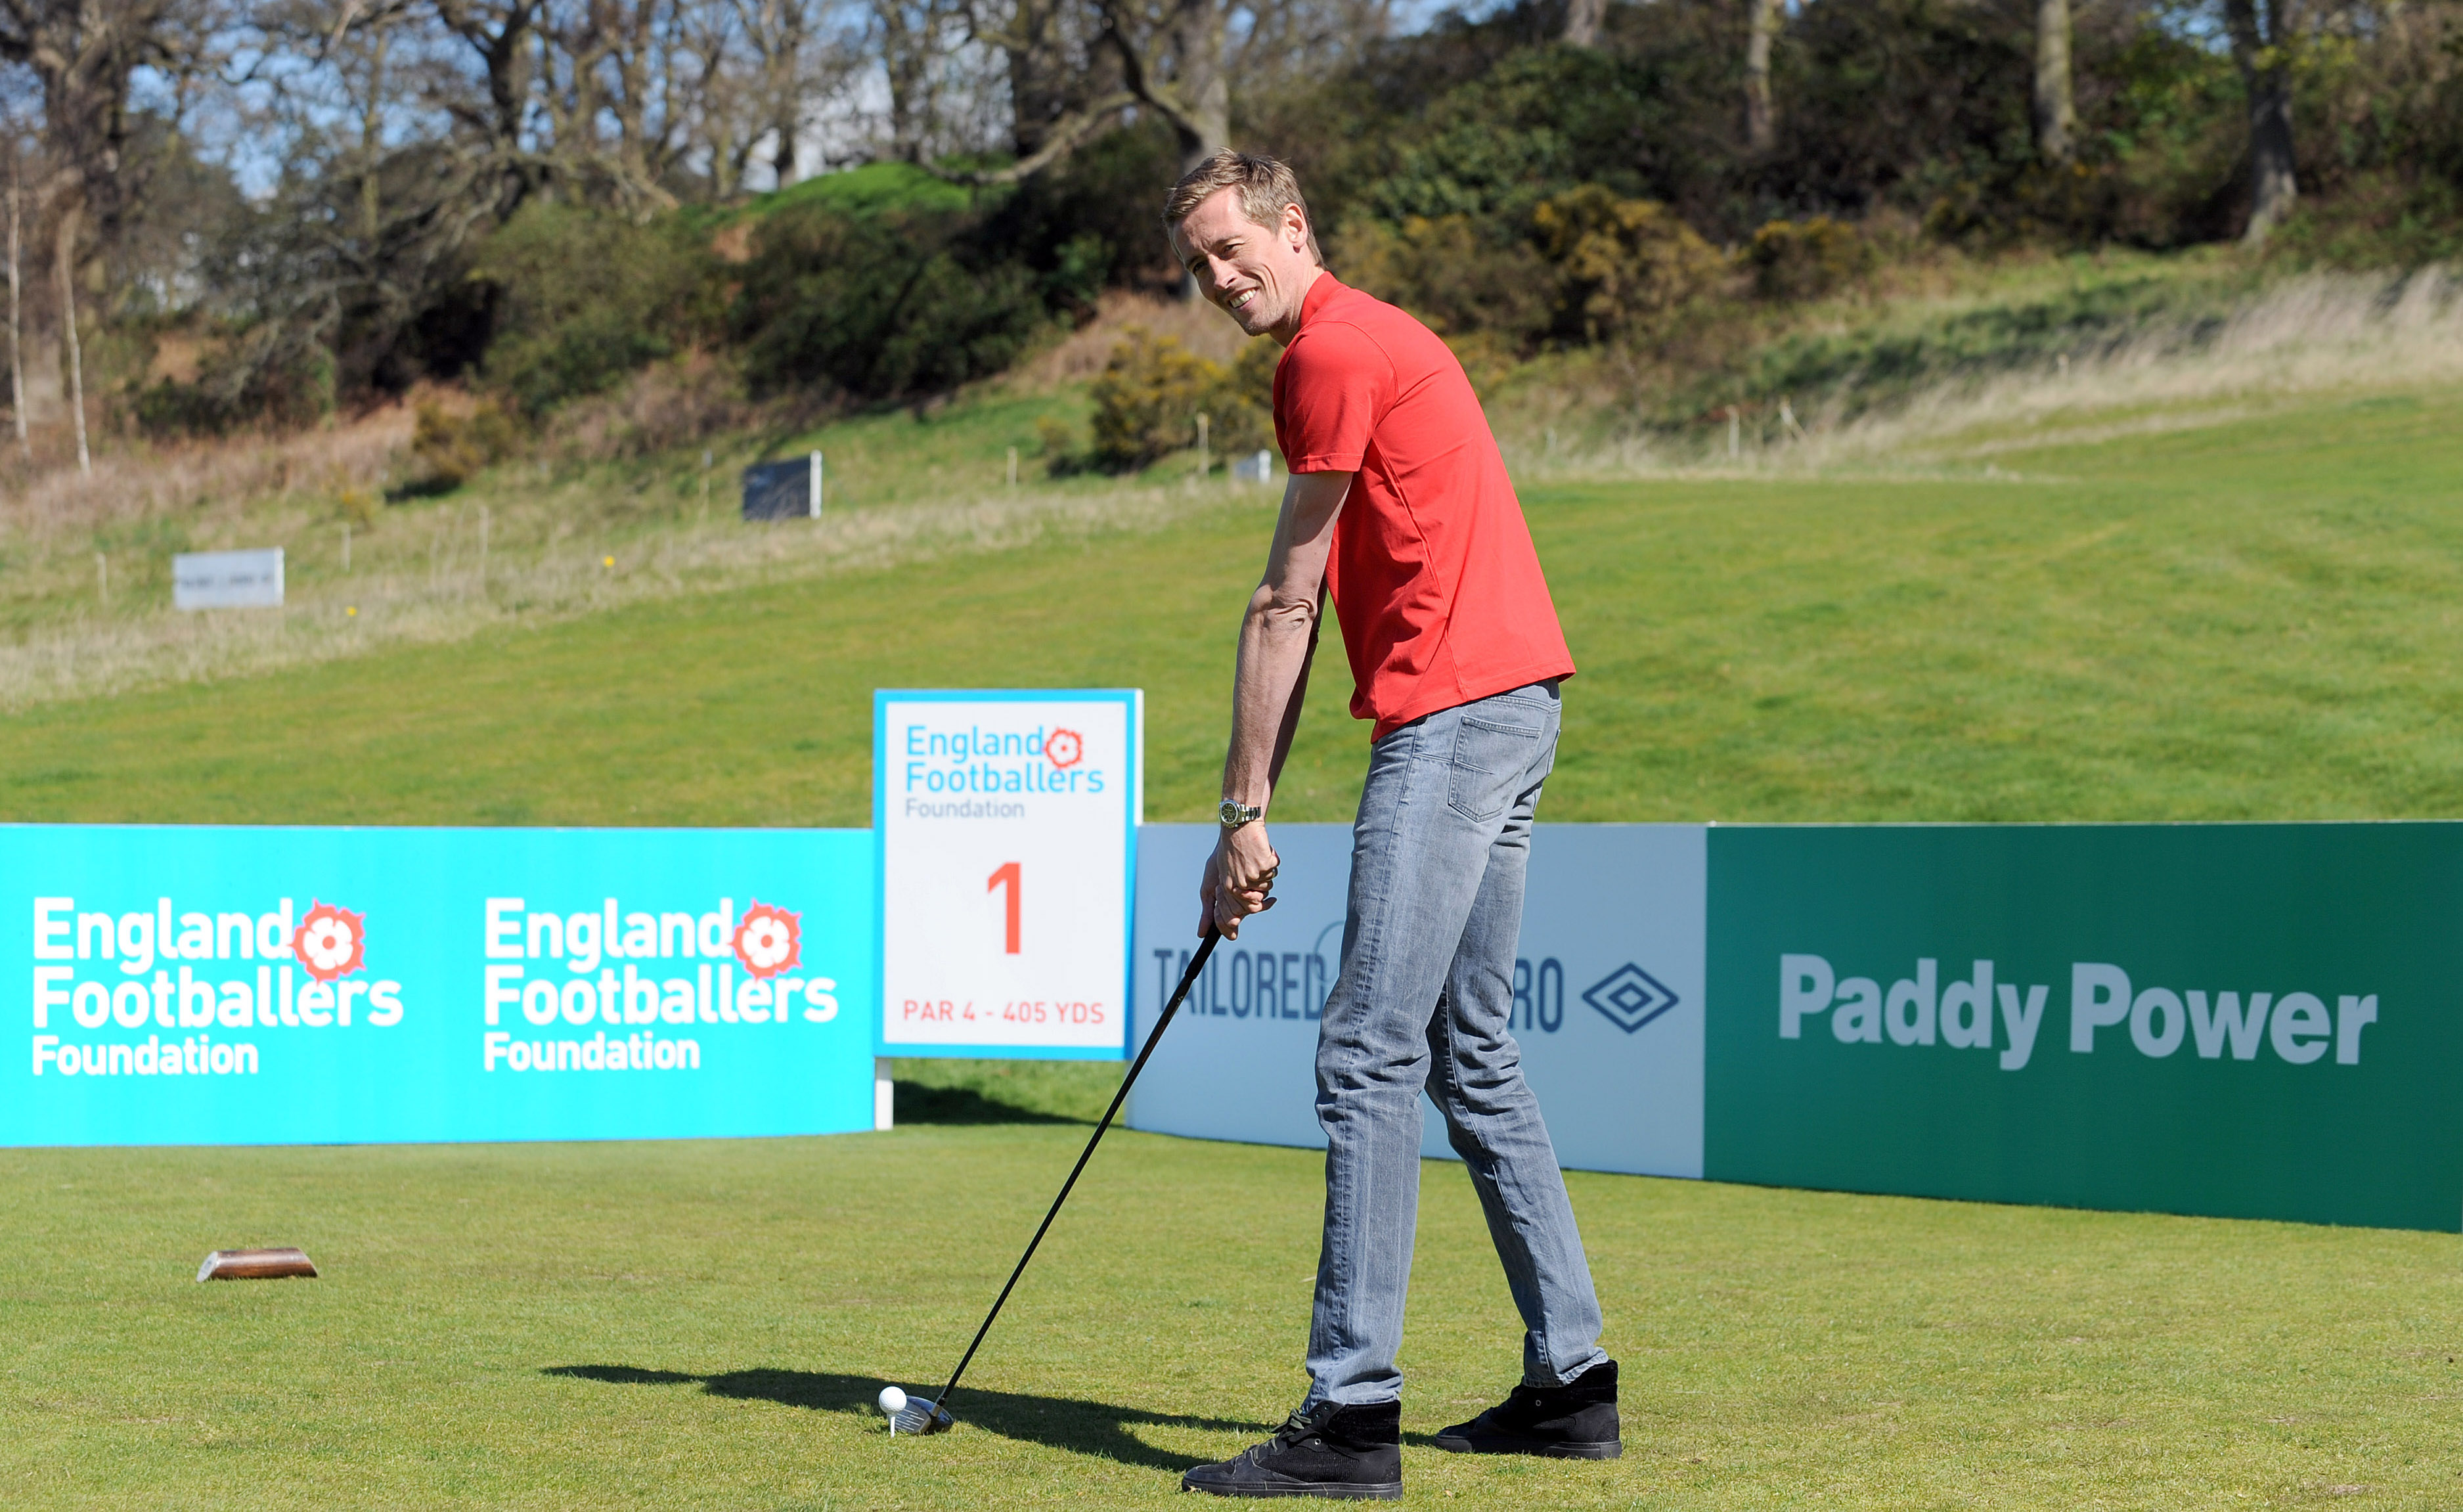 Peter Crouch Golf